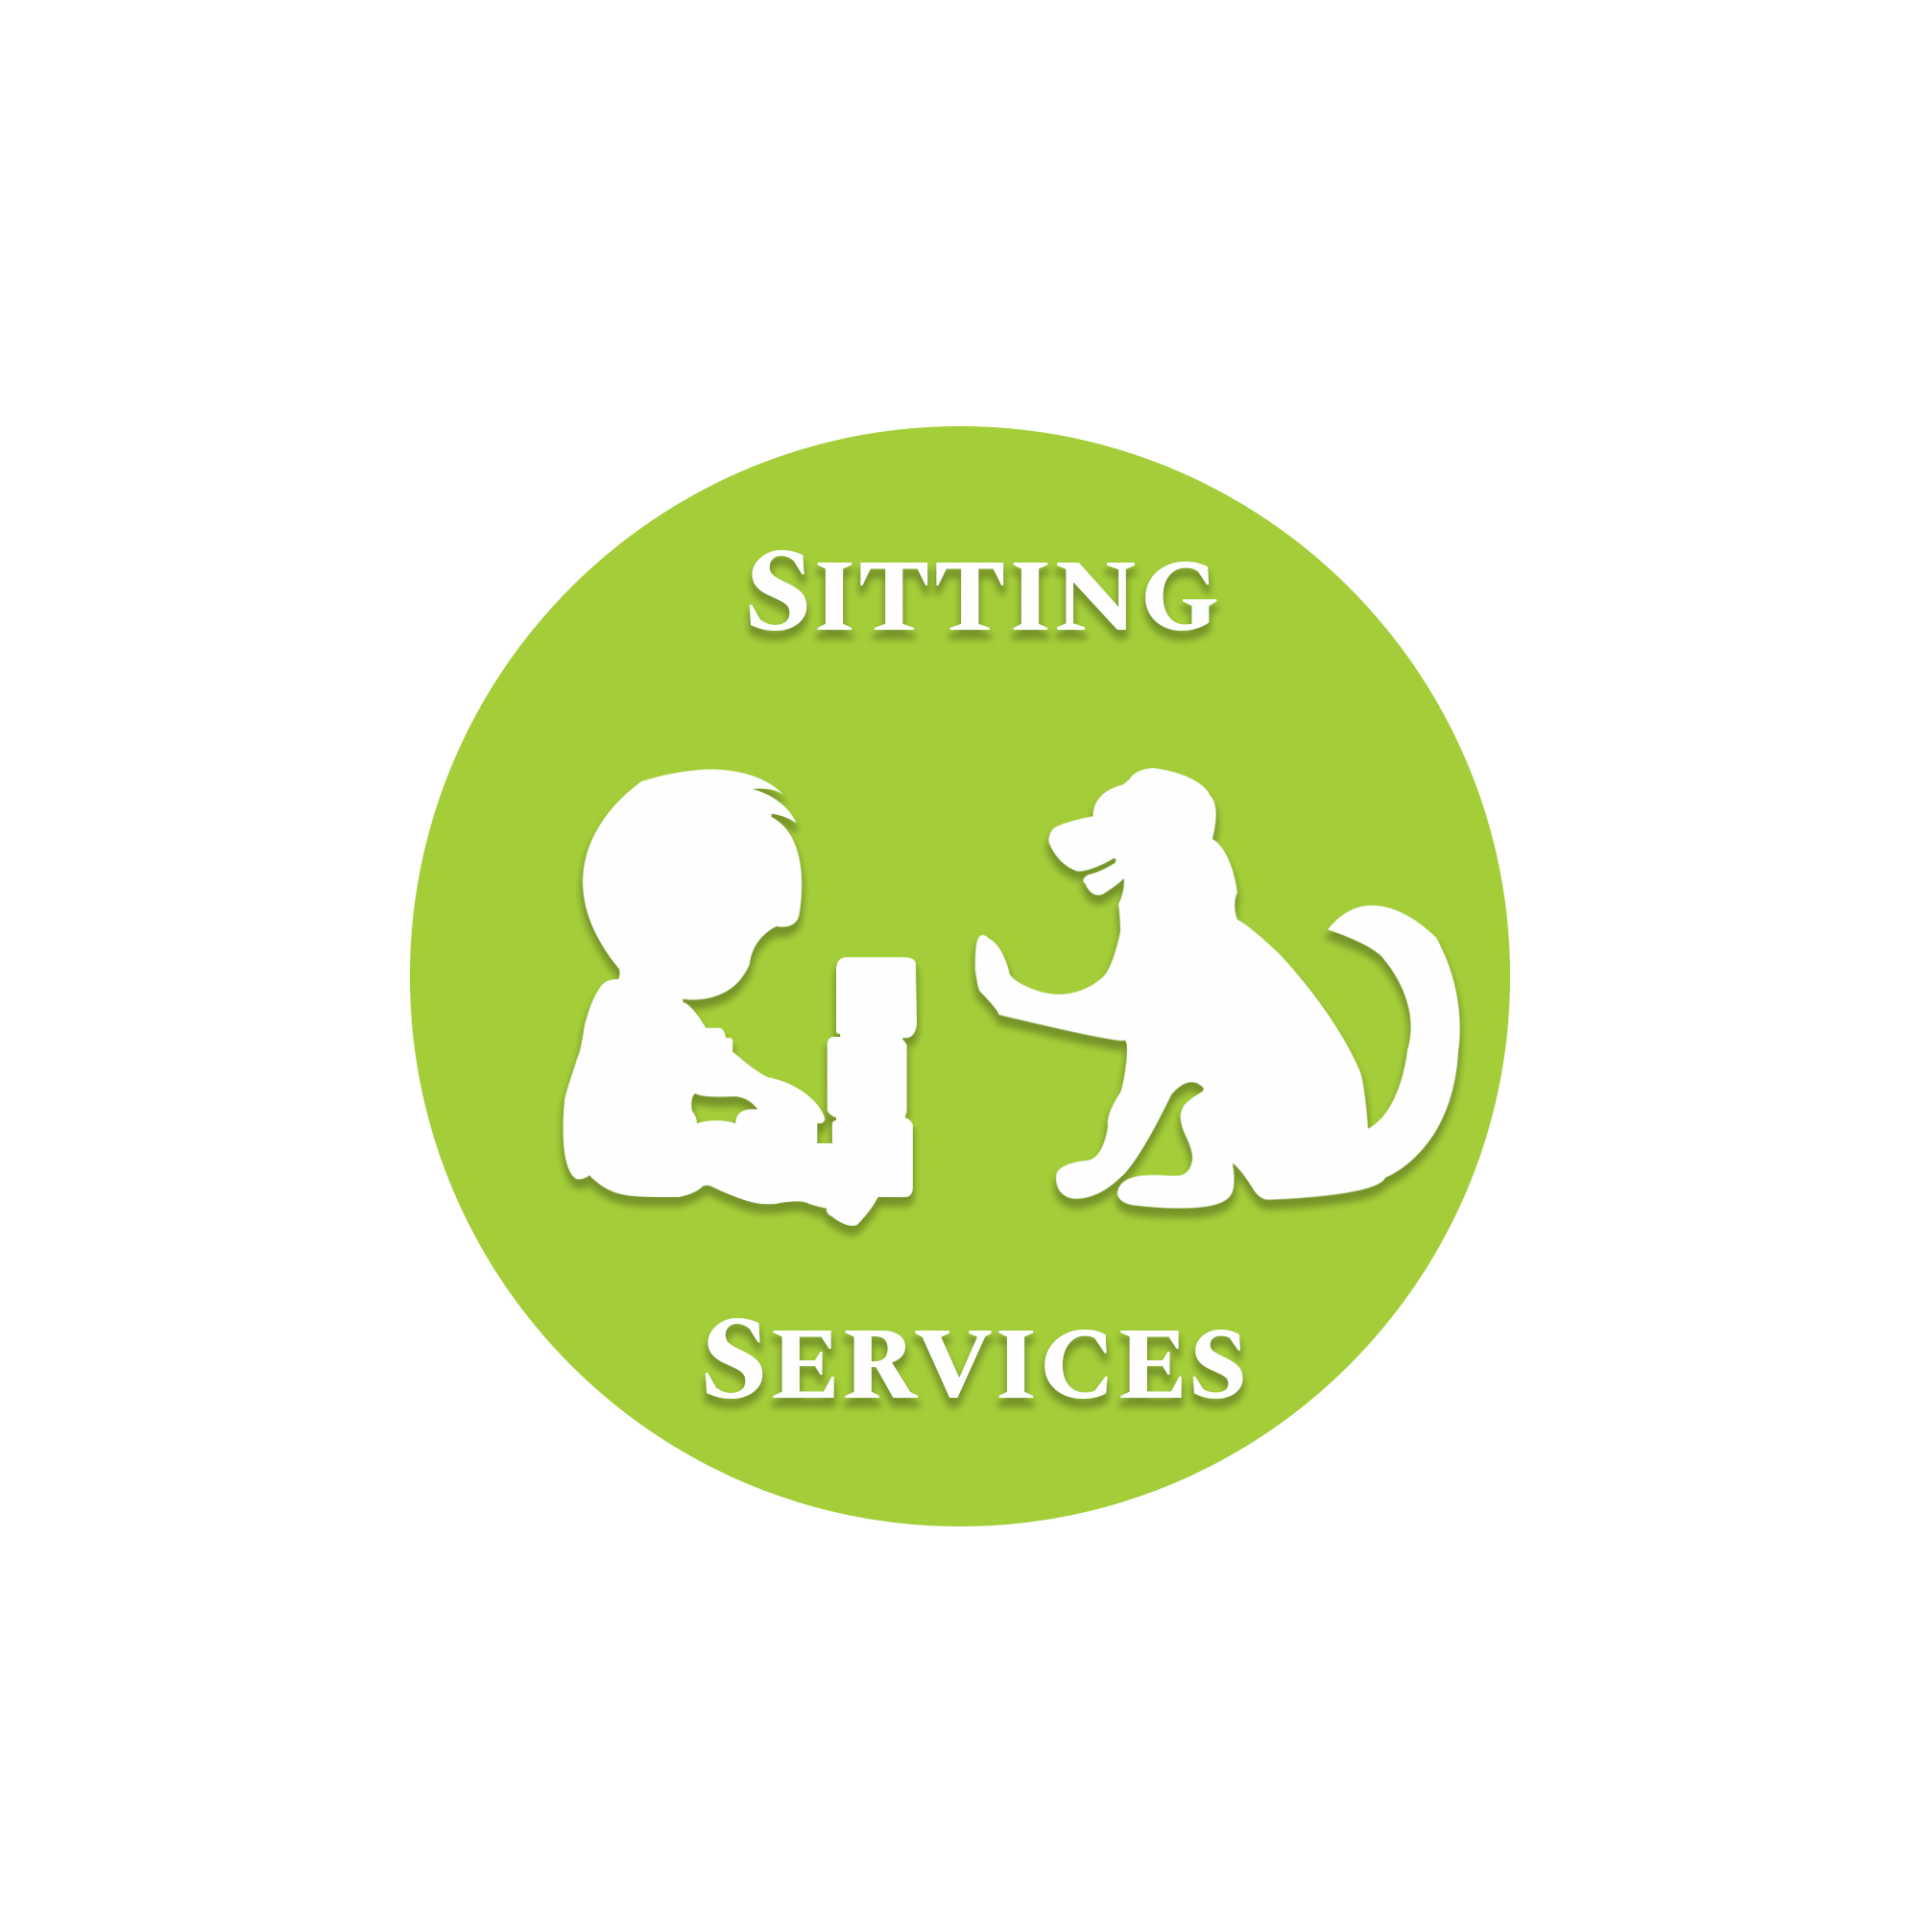 Logo sitting services